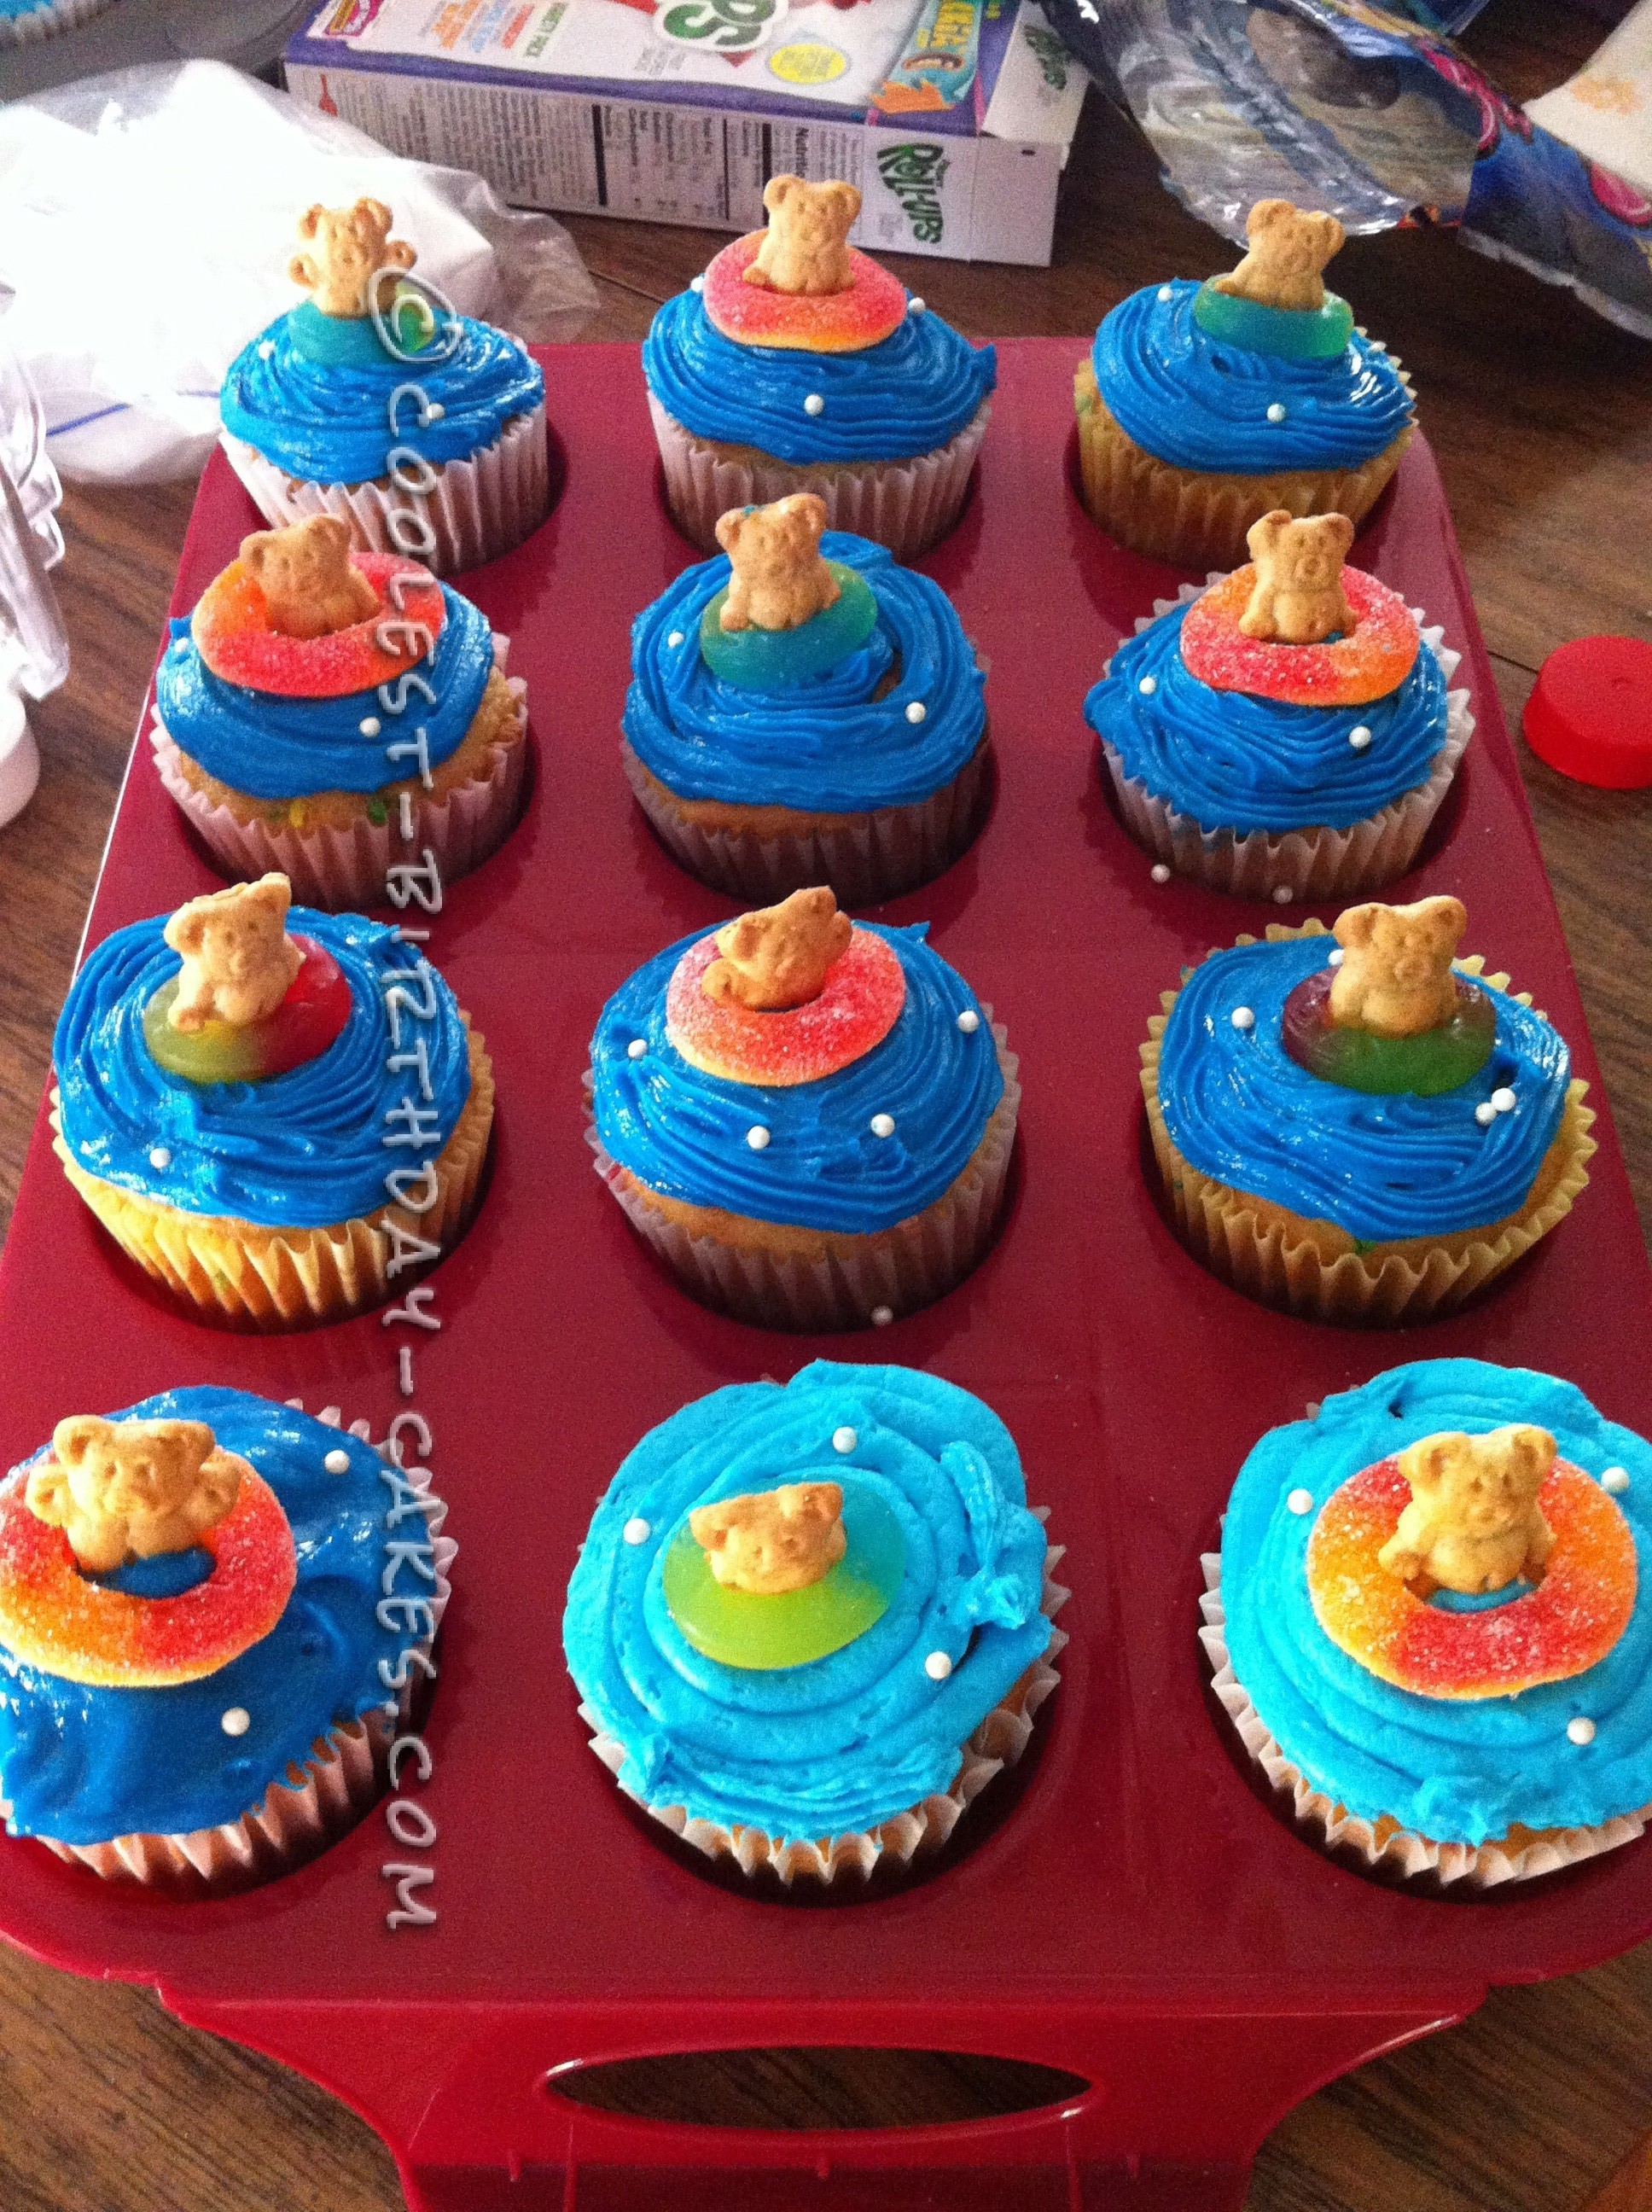 Cup cakes were also fun fetti cake with blue butter cream icing.